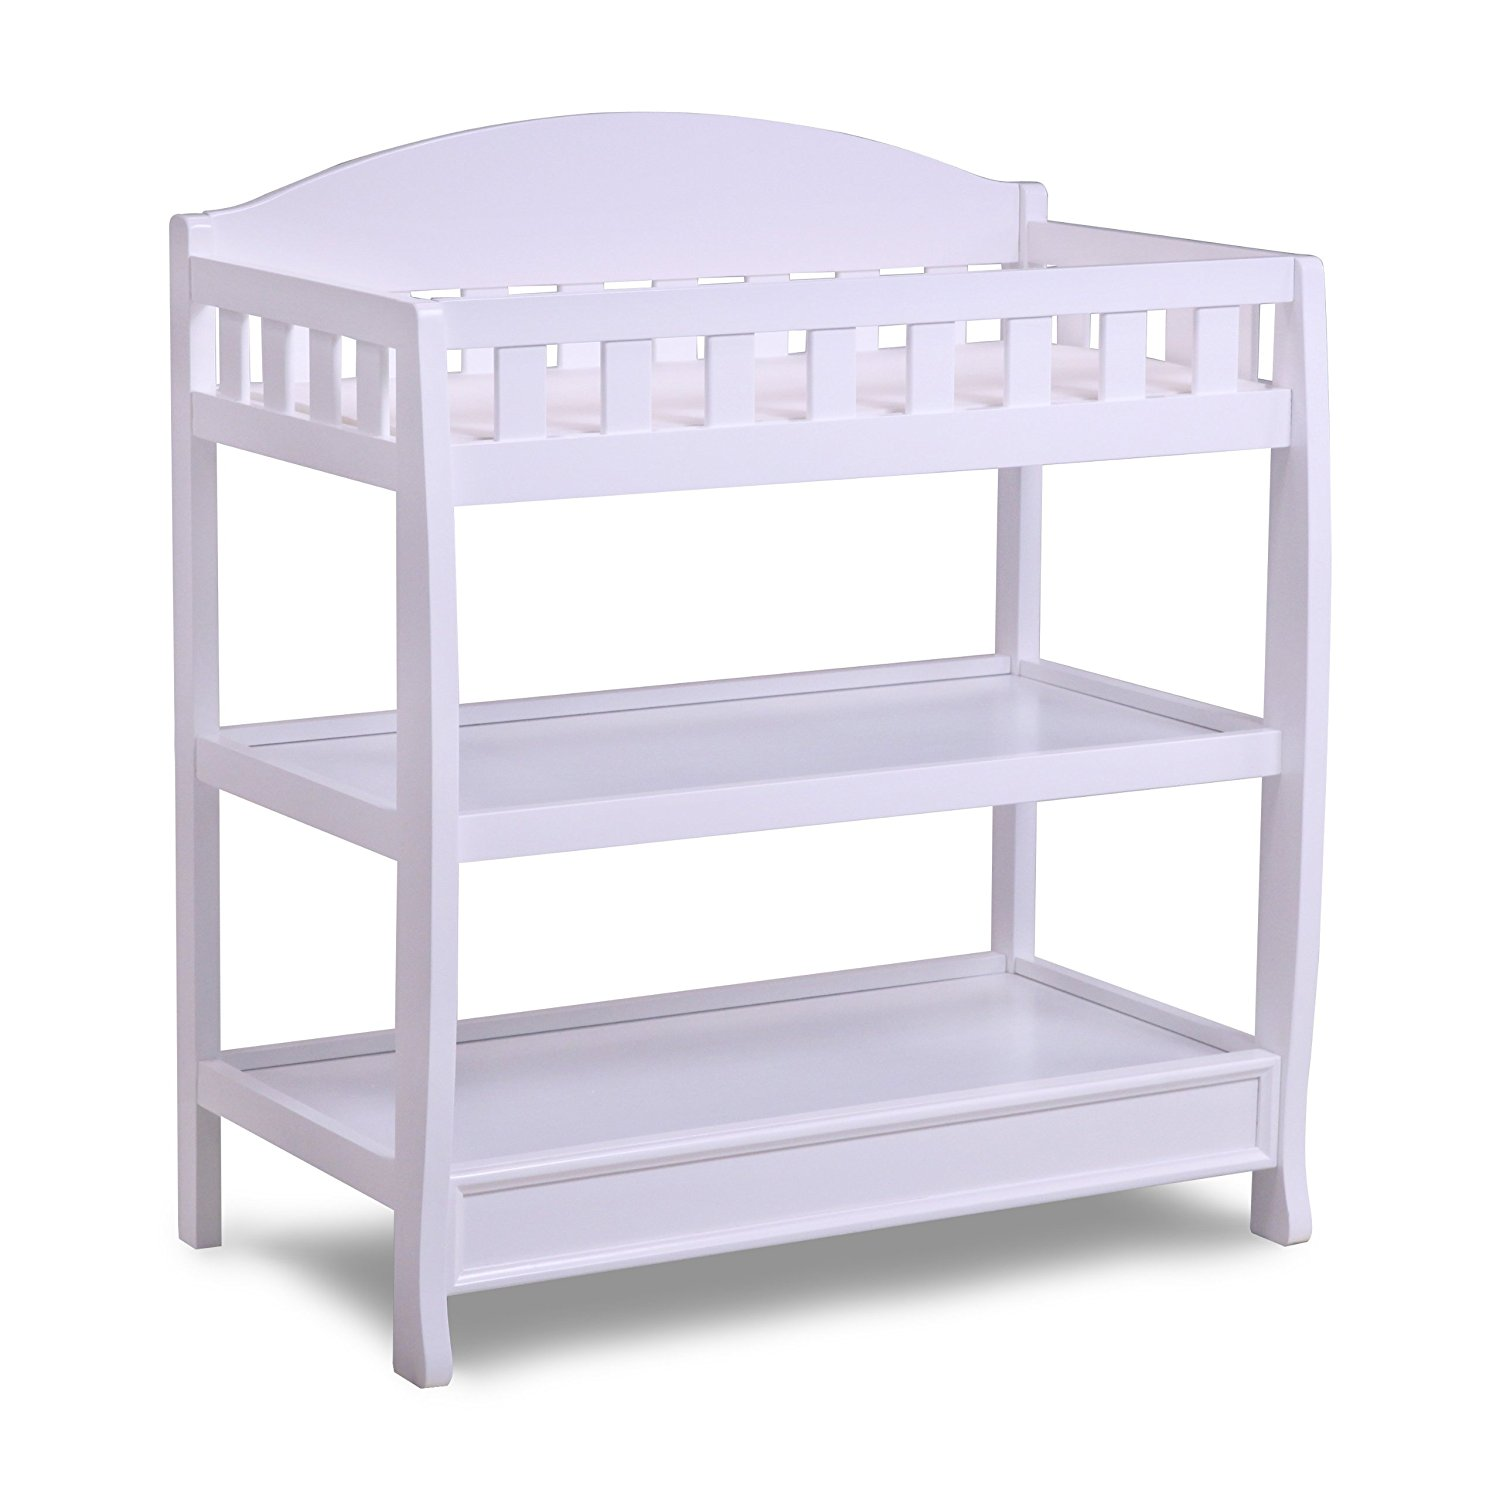 delta children infant changing table with pad, white HXXDLQR